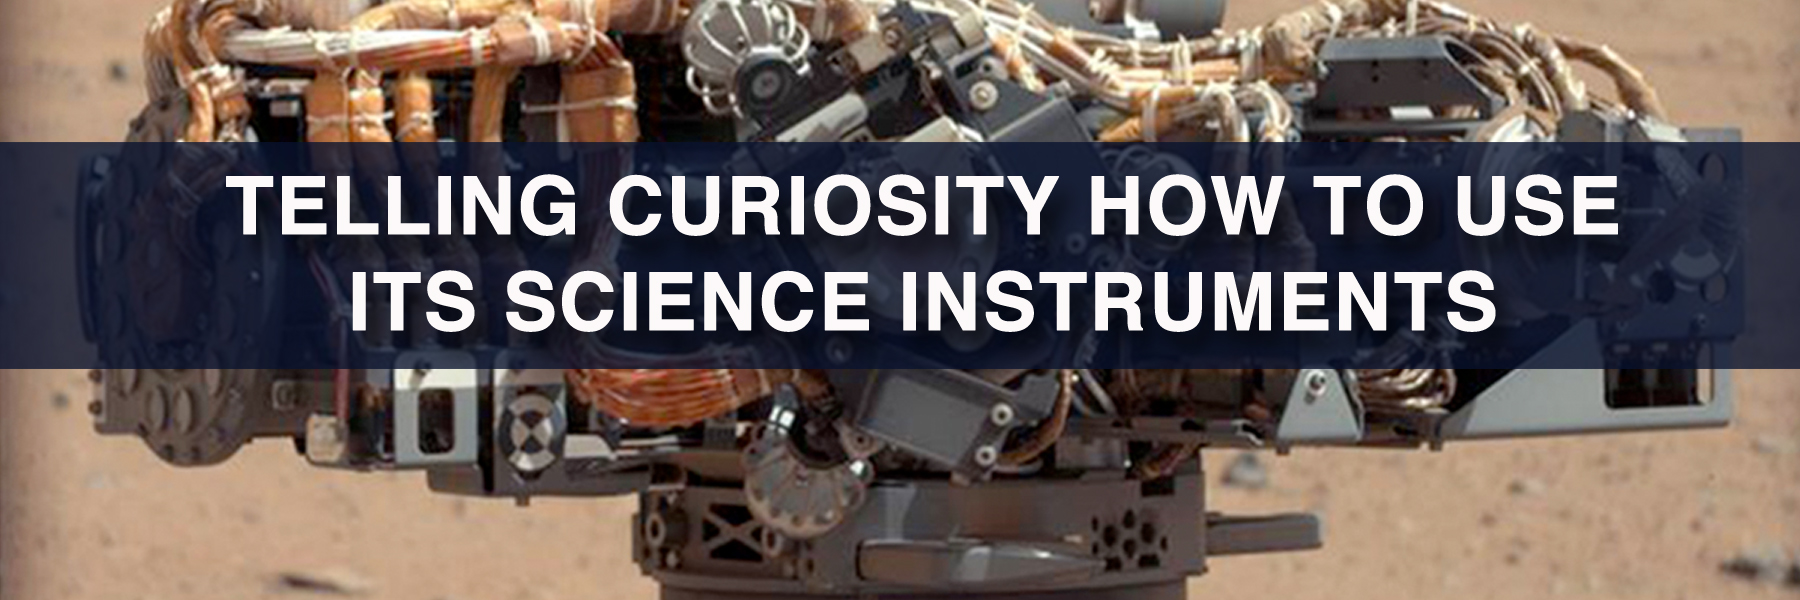 TELLING CURIOSITY HOW TO USE ITS SCIENCE INSTRUMENTS